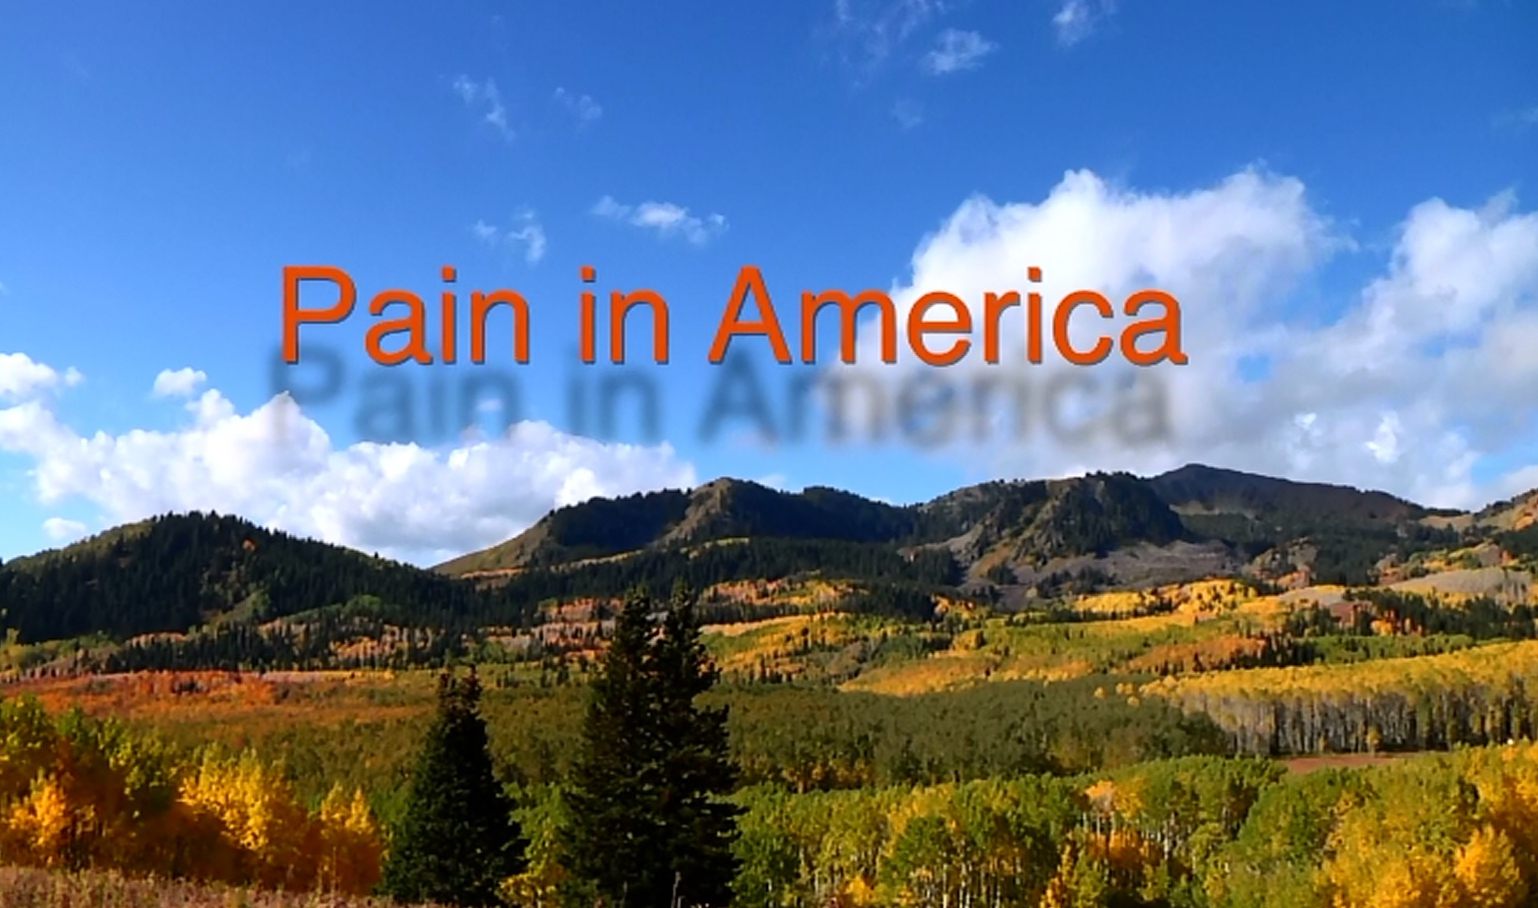 Pain_in_America_Main_Title_Screen_Grab